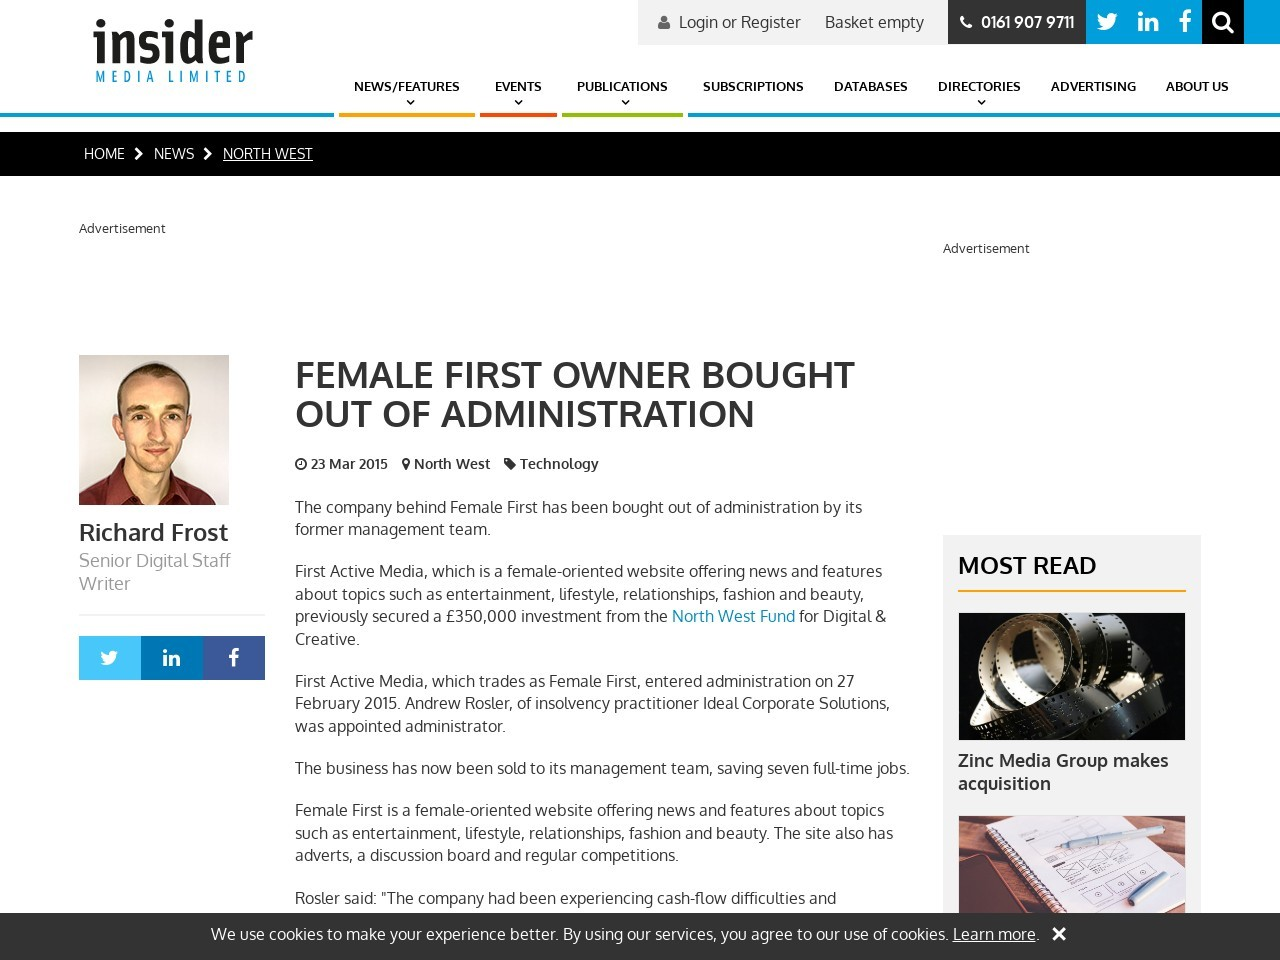 Female First owner bought out of administration